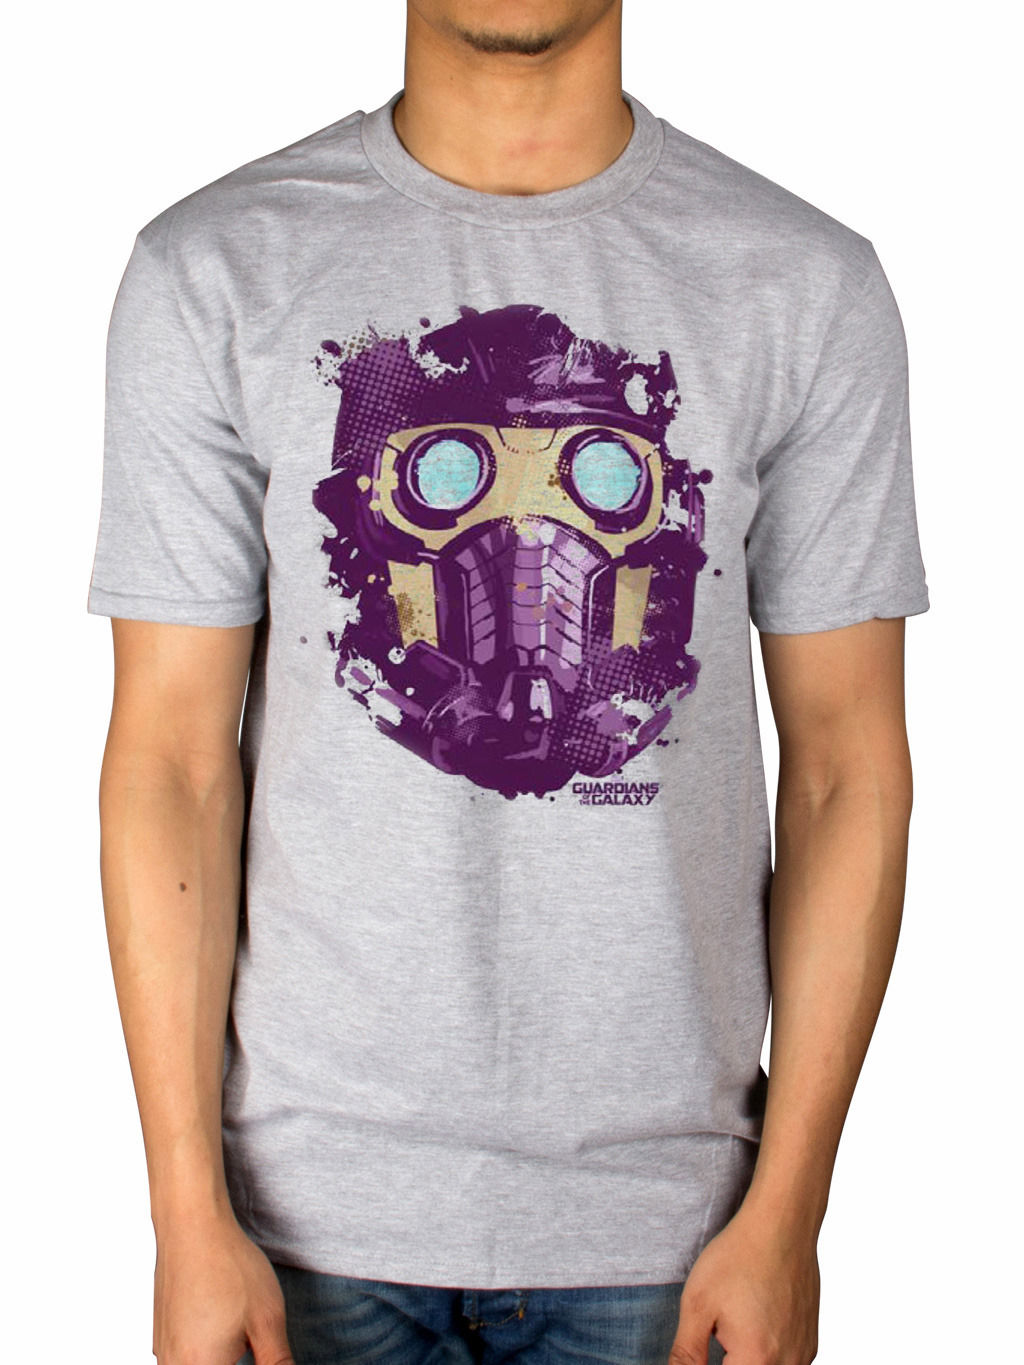 Official Guardians of The Galaxy Starlord Mask T-Shirt Avengers Iron Man Movie Funny Clothing Casual Short Sleeve T Shirts